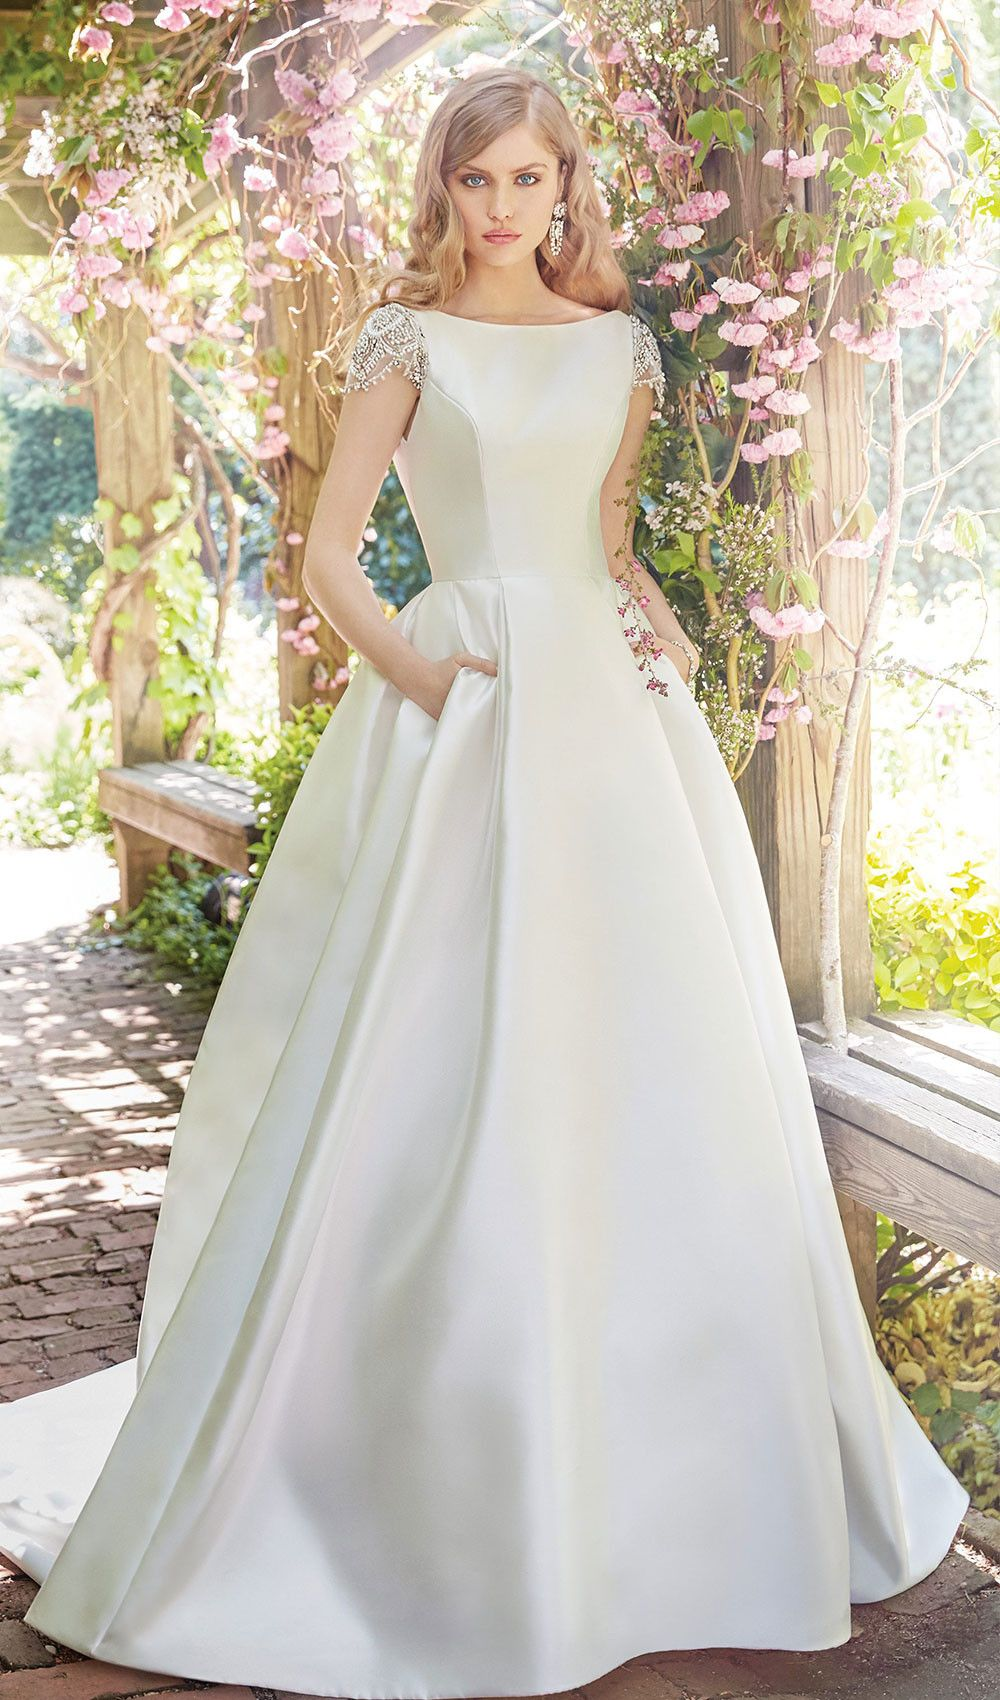 Try This White Mikado Modest Wedding Dress With Jeweled Cap Sleeves From Alvina Valenta Available